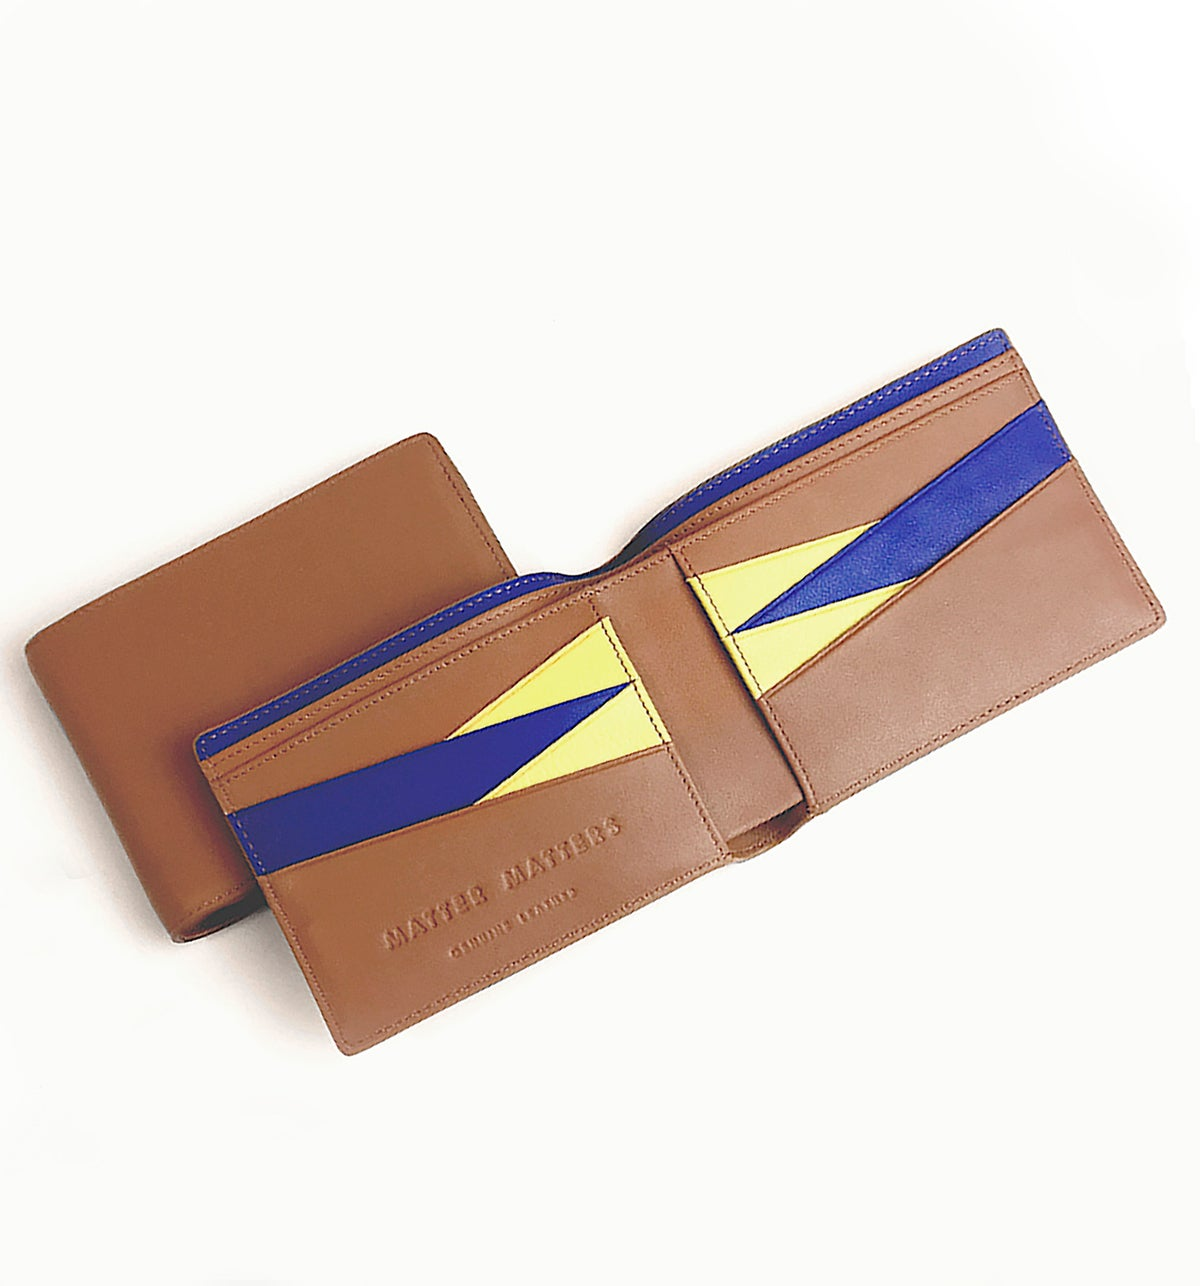 Image of BILLFOLD WALLET - Brown/ Blue